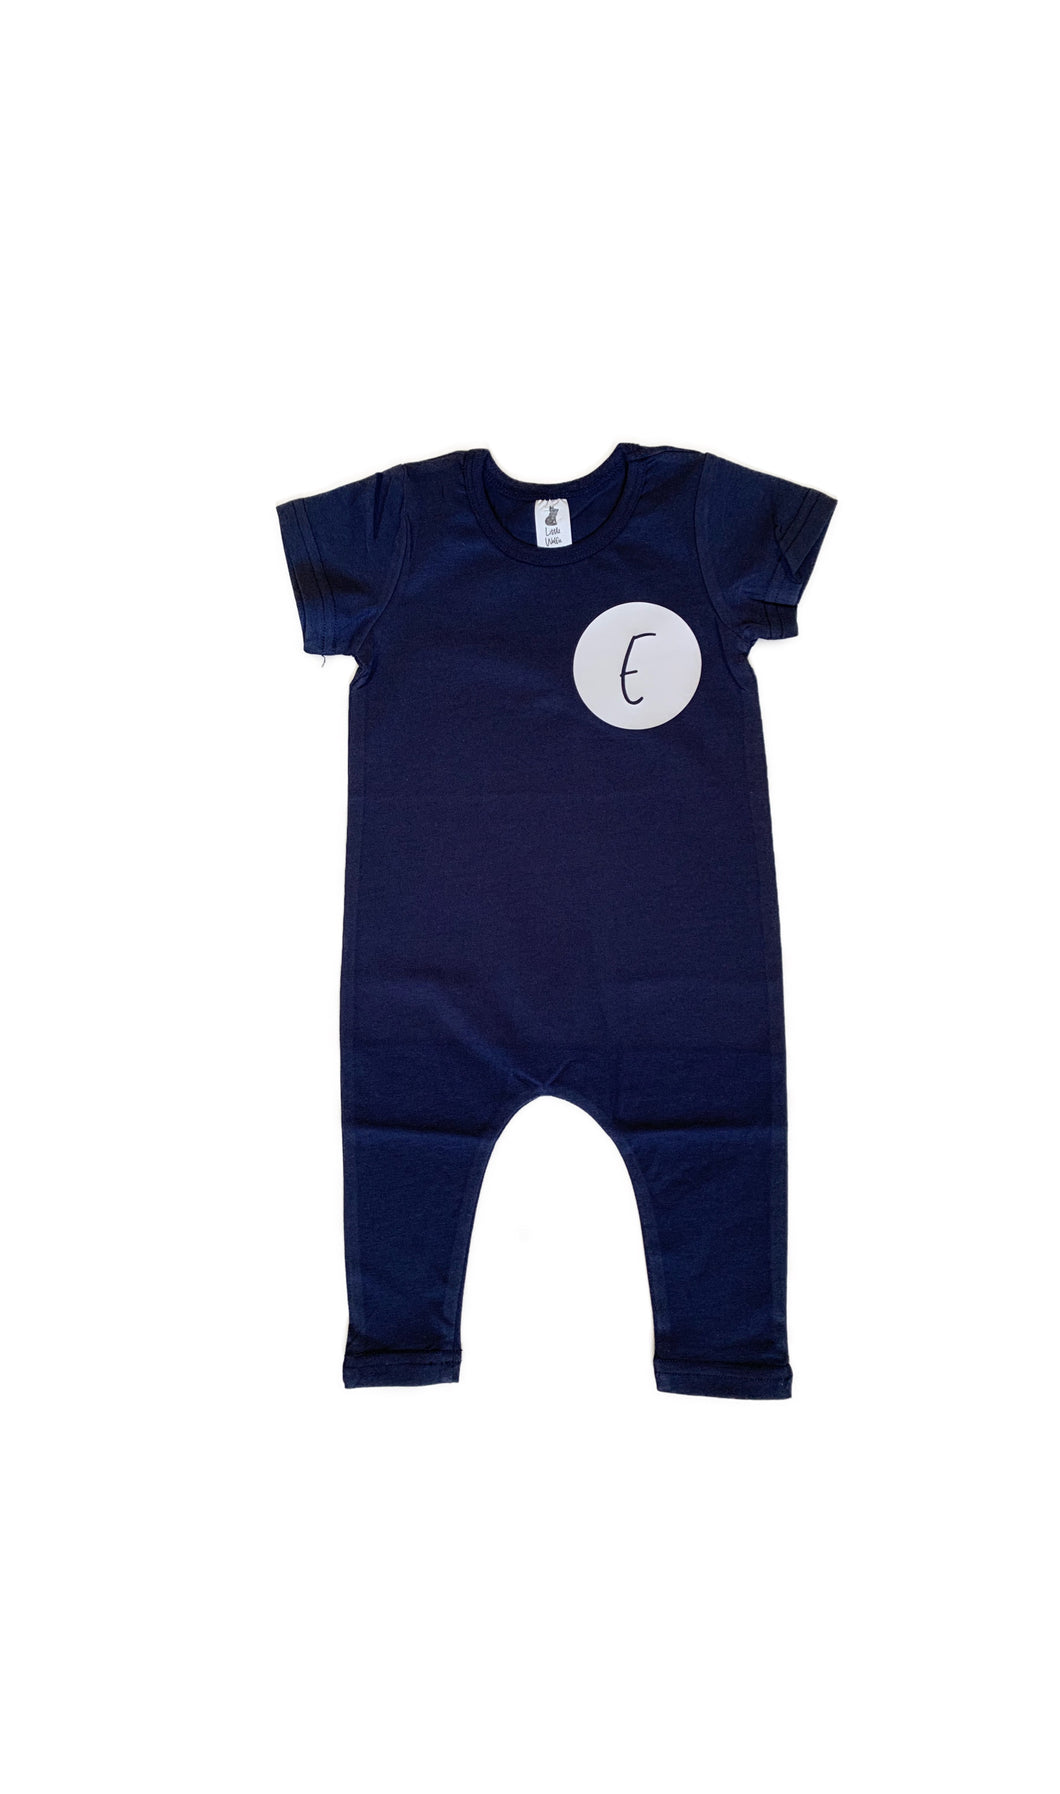 Personalised Initial Small Circle Romper